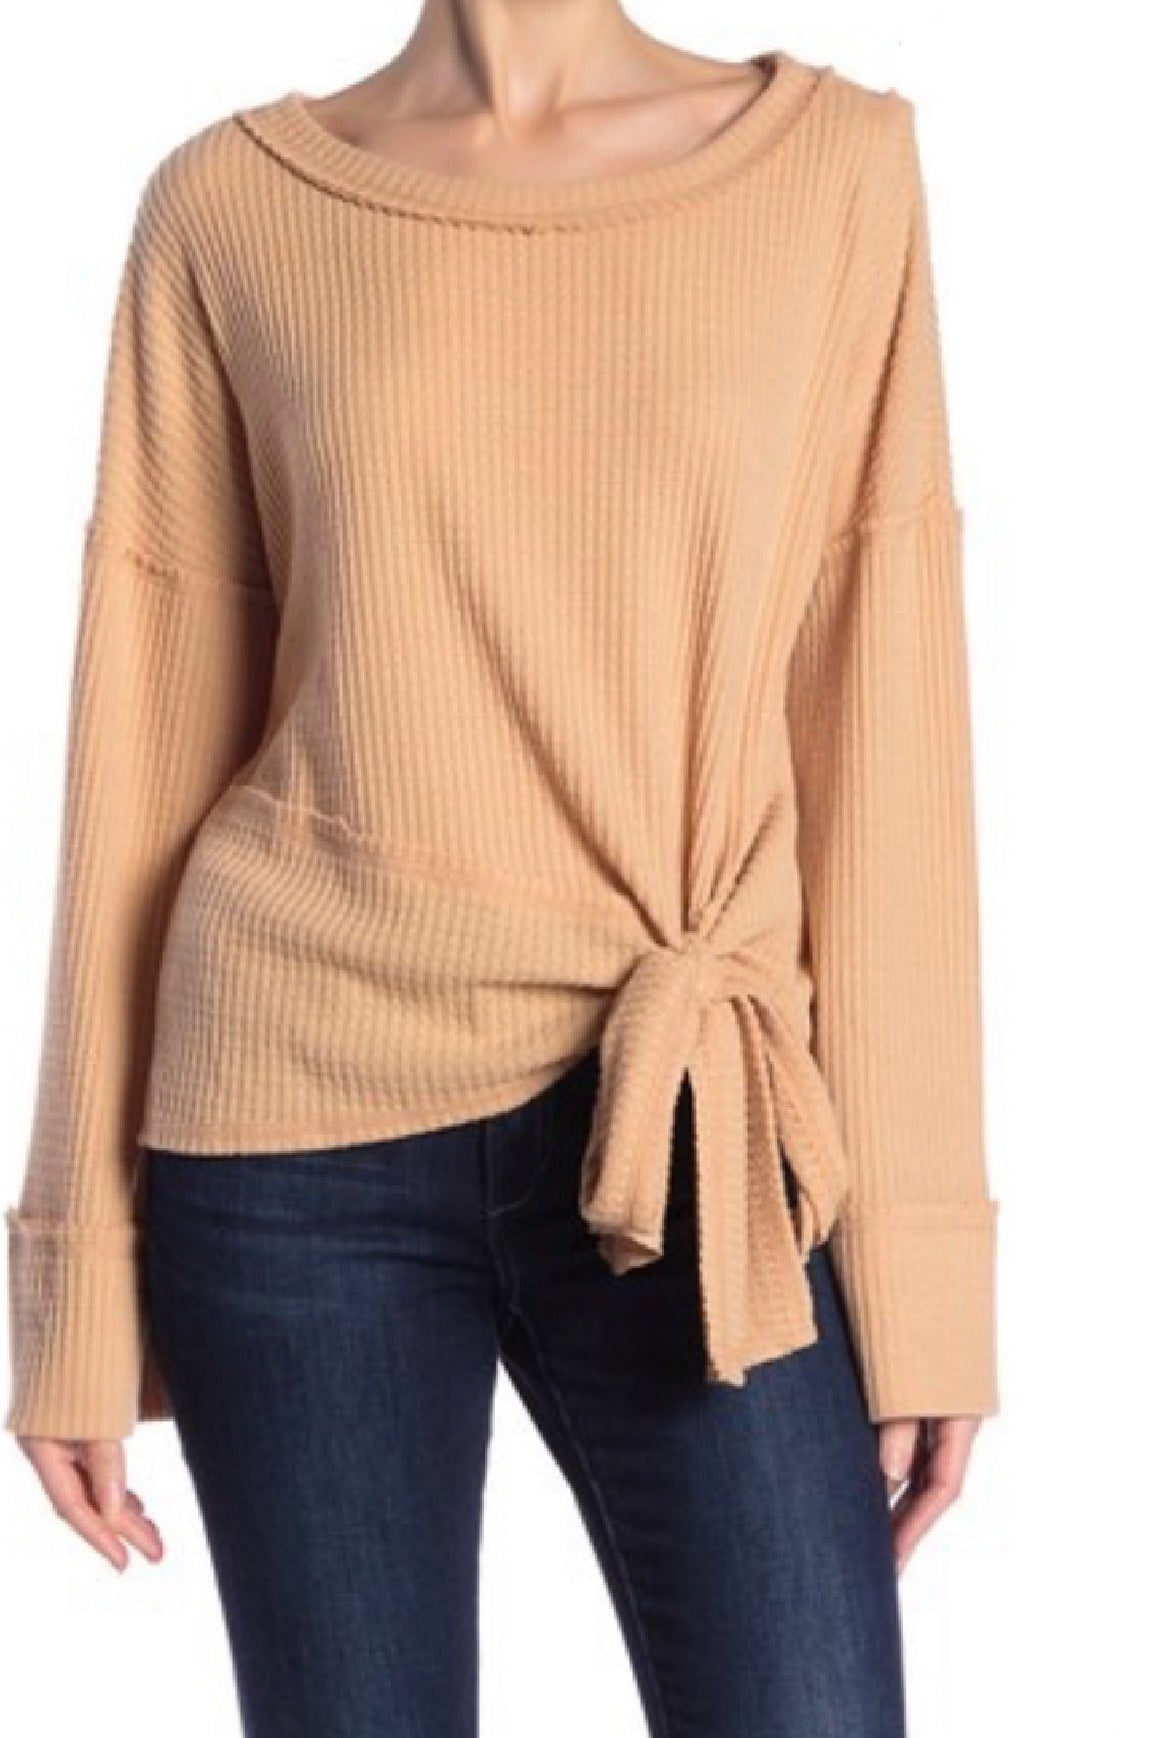 Knot Your Girlfriends Waffle Knit Thermal Too